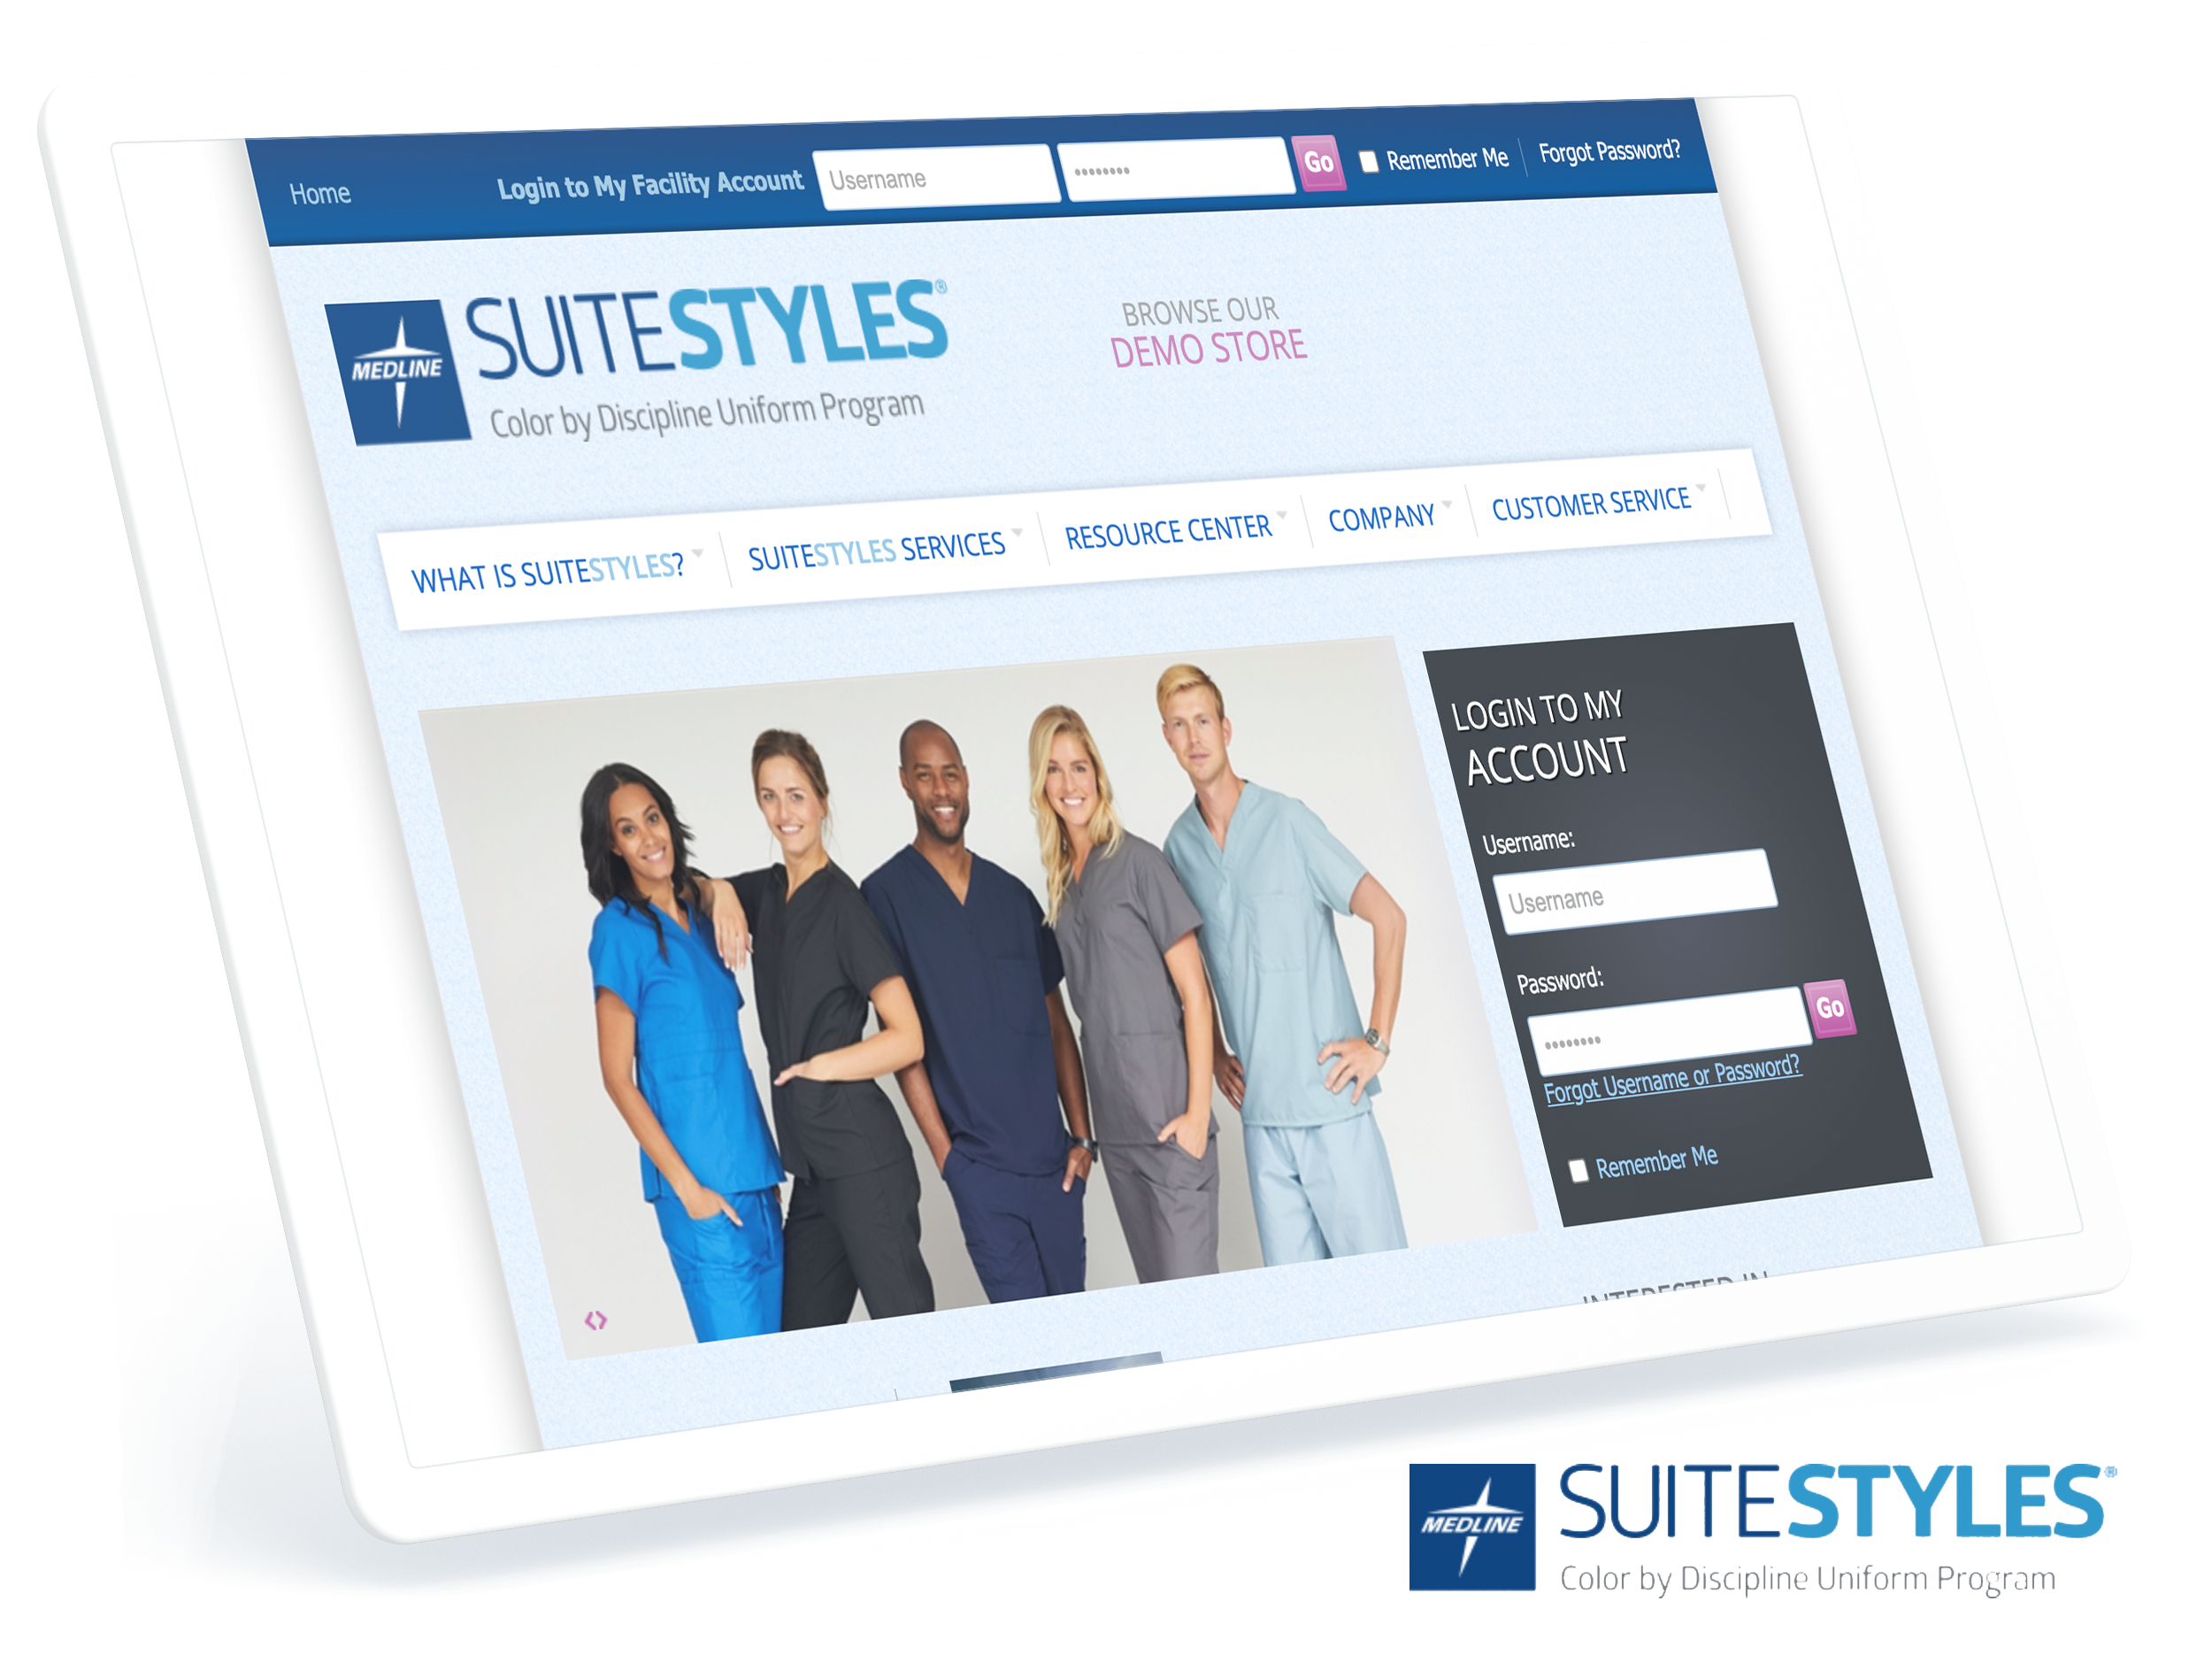 Suite Styles Screens